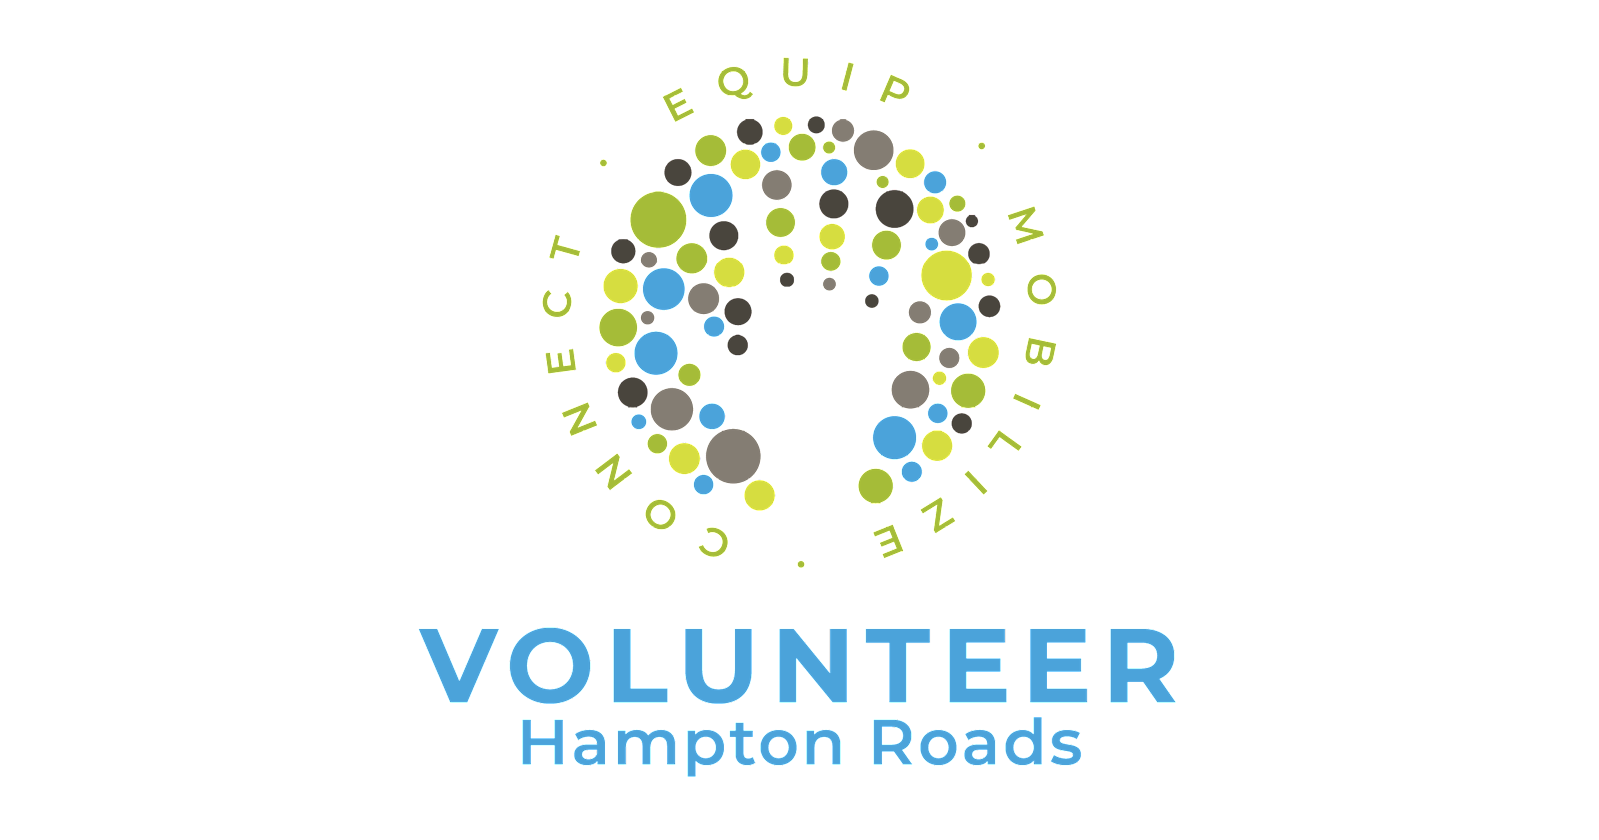 Volunteer Hampton Roads logo